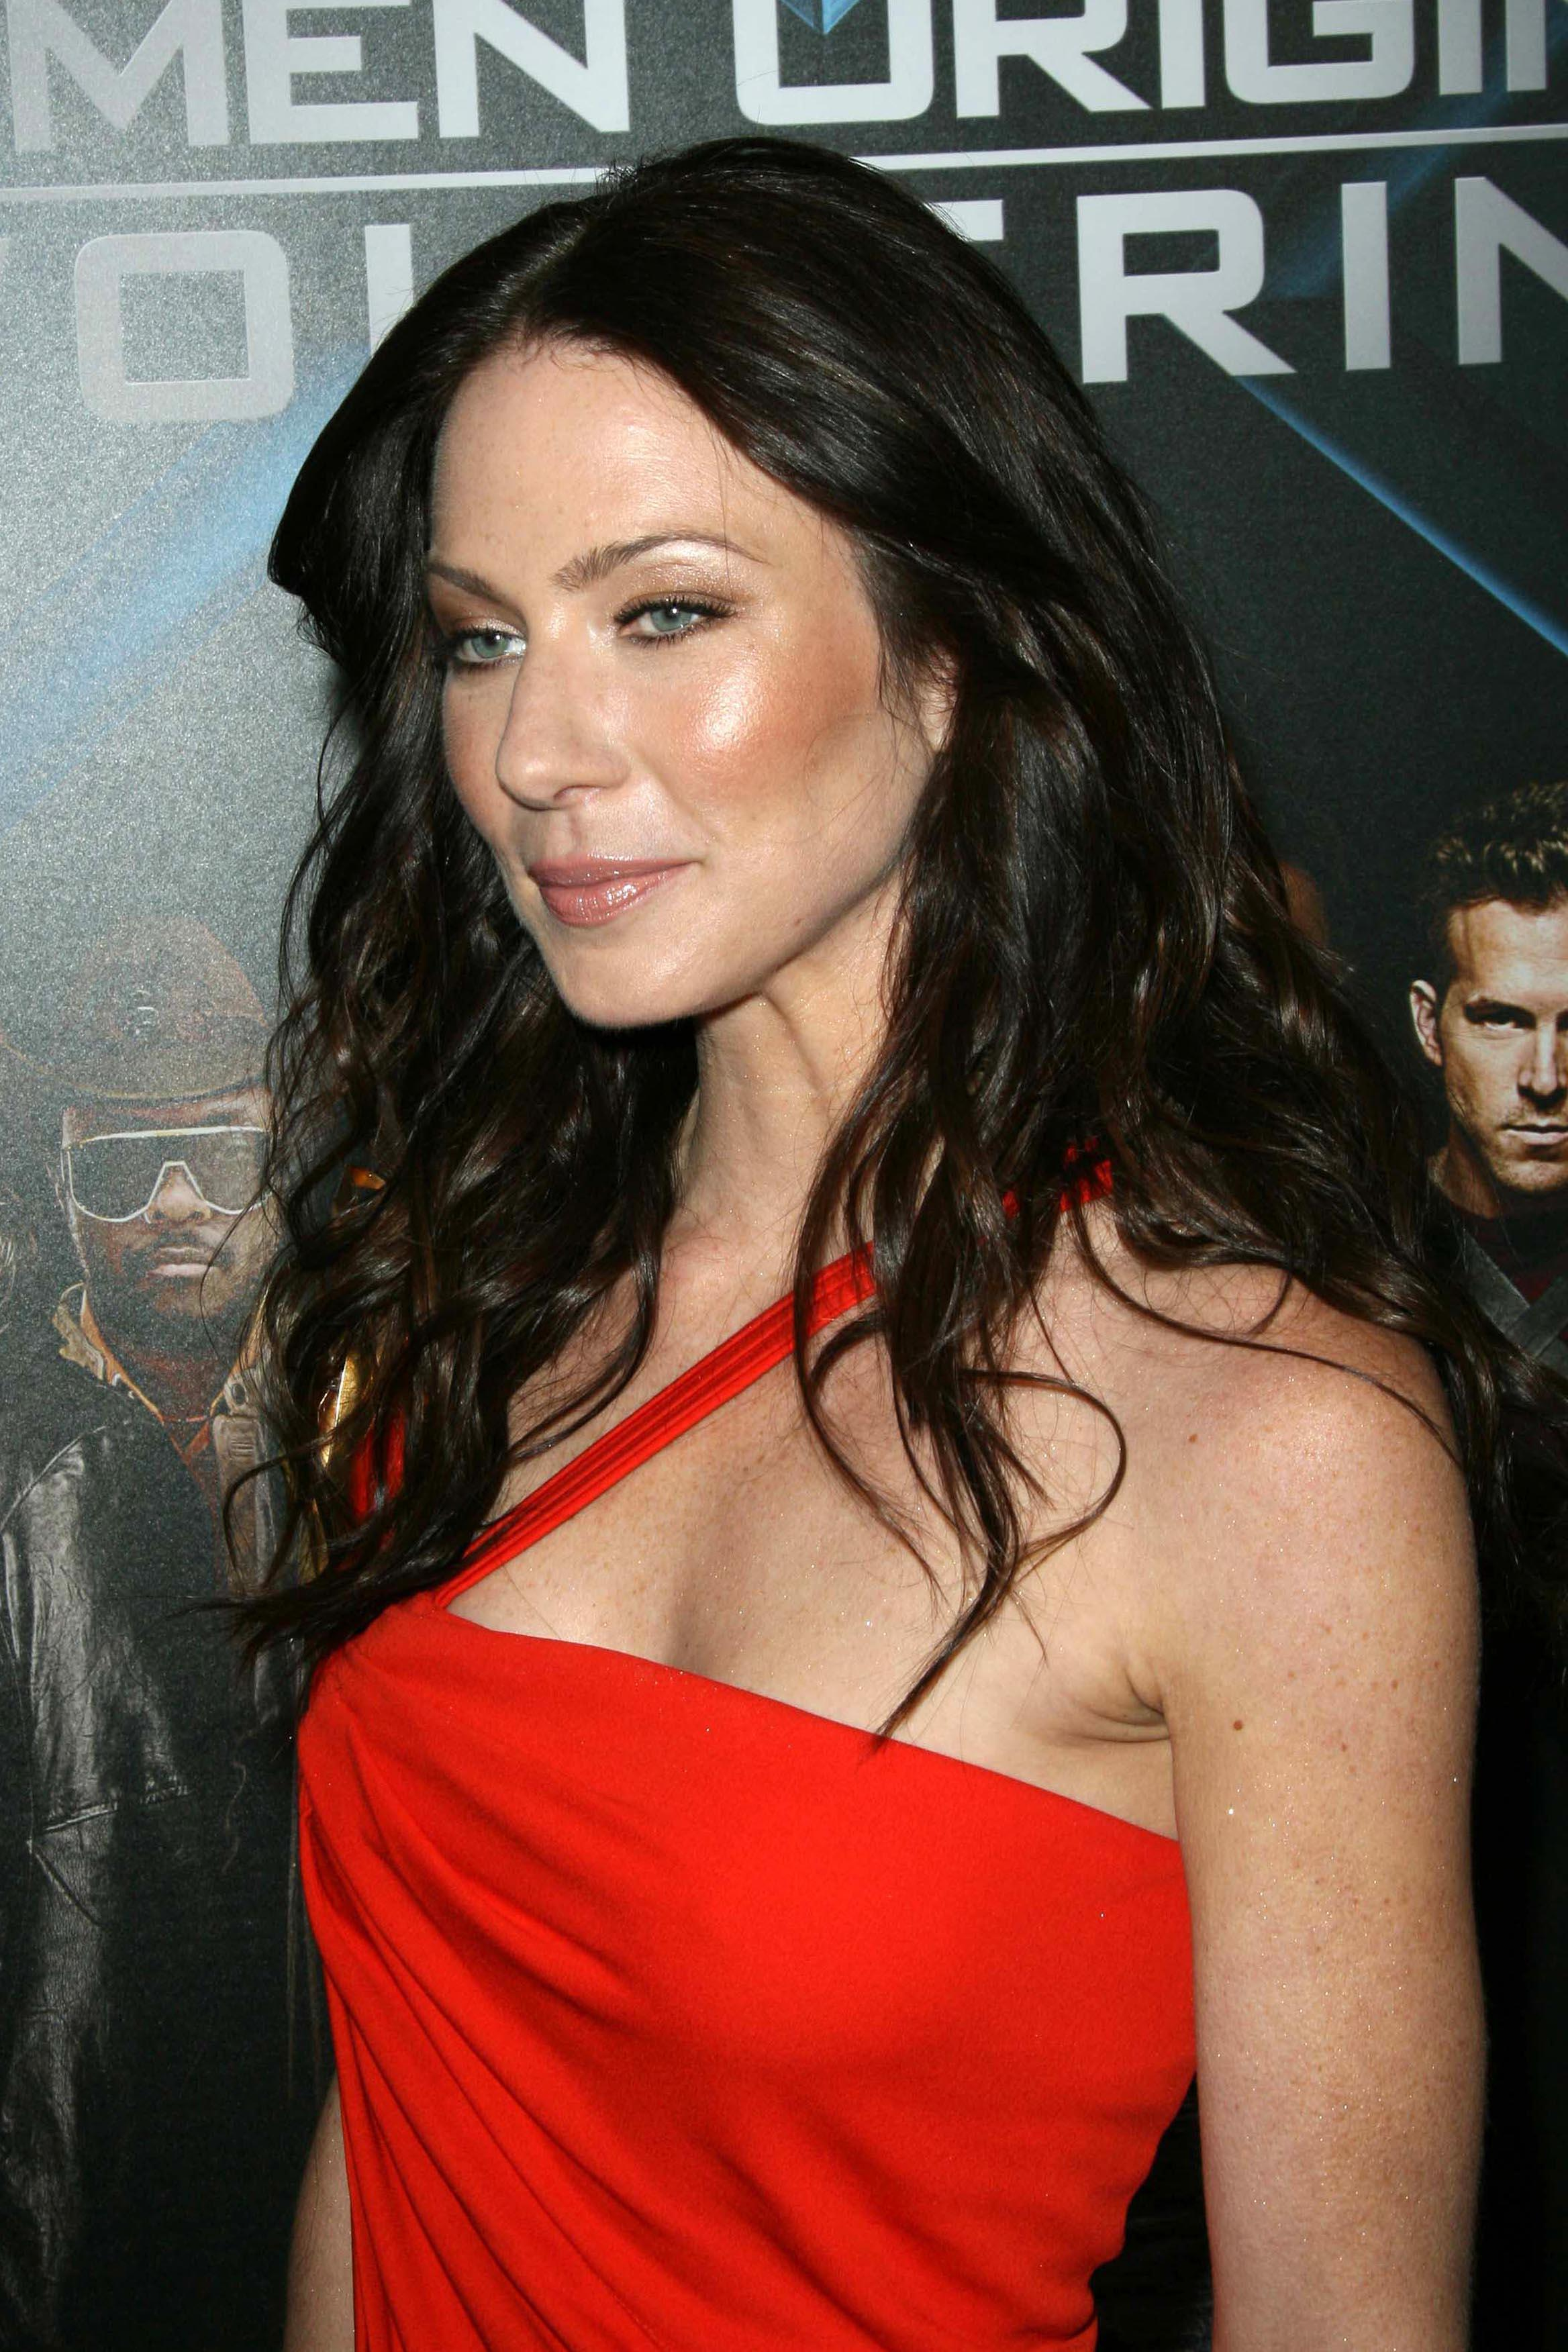 Lynn Collins photo 17 of 67 pics, wallpaper - photo #356873 - ThePlace2